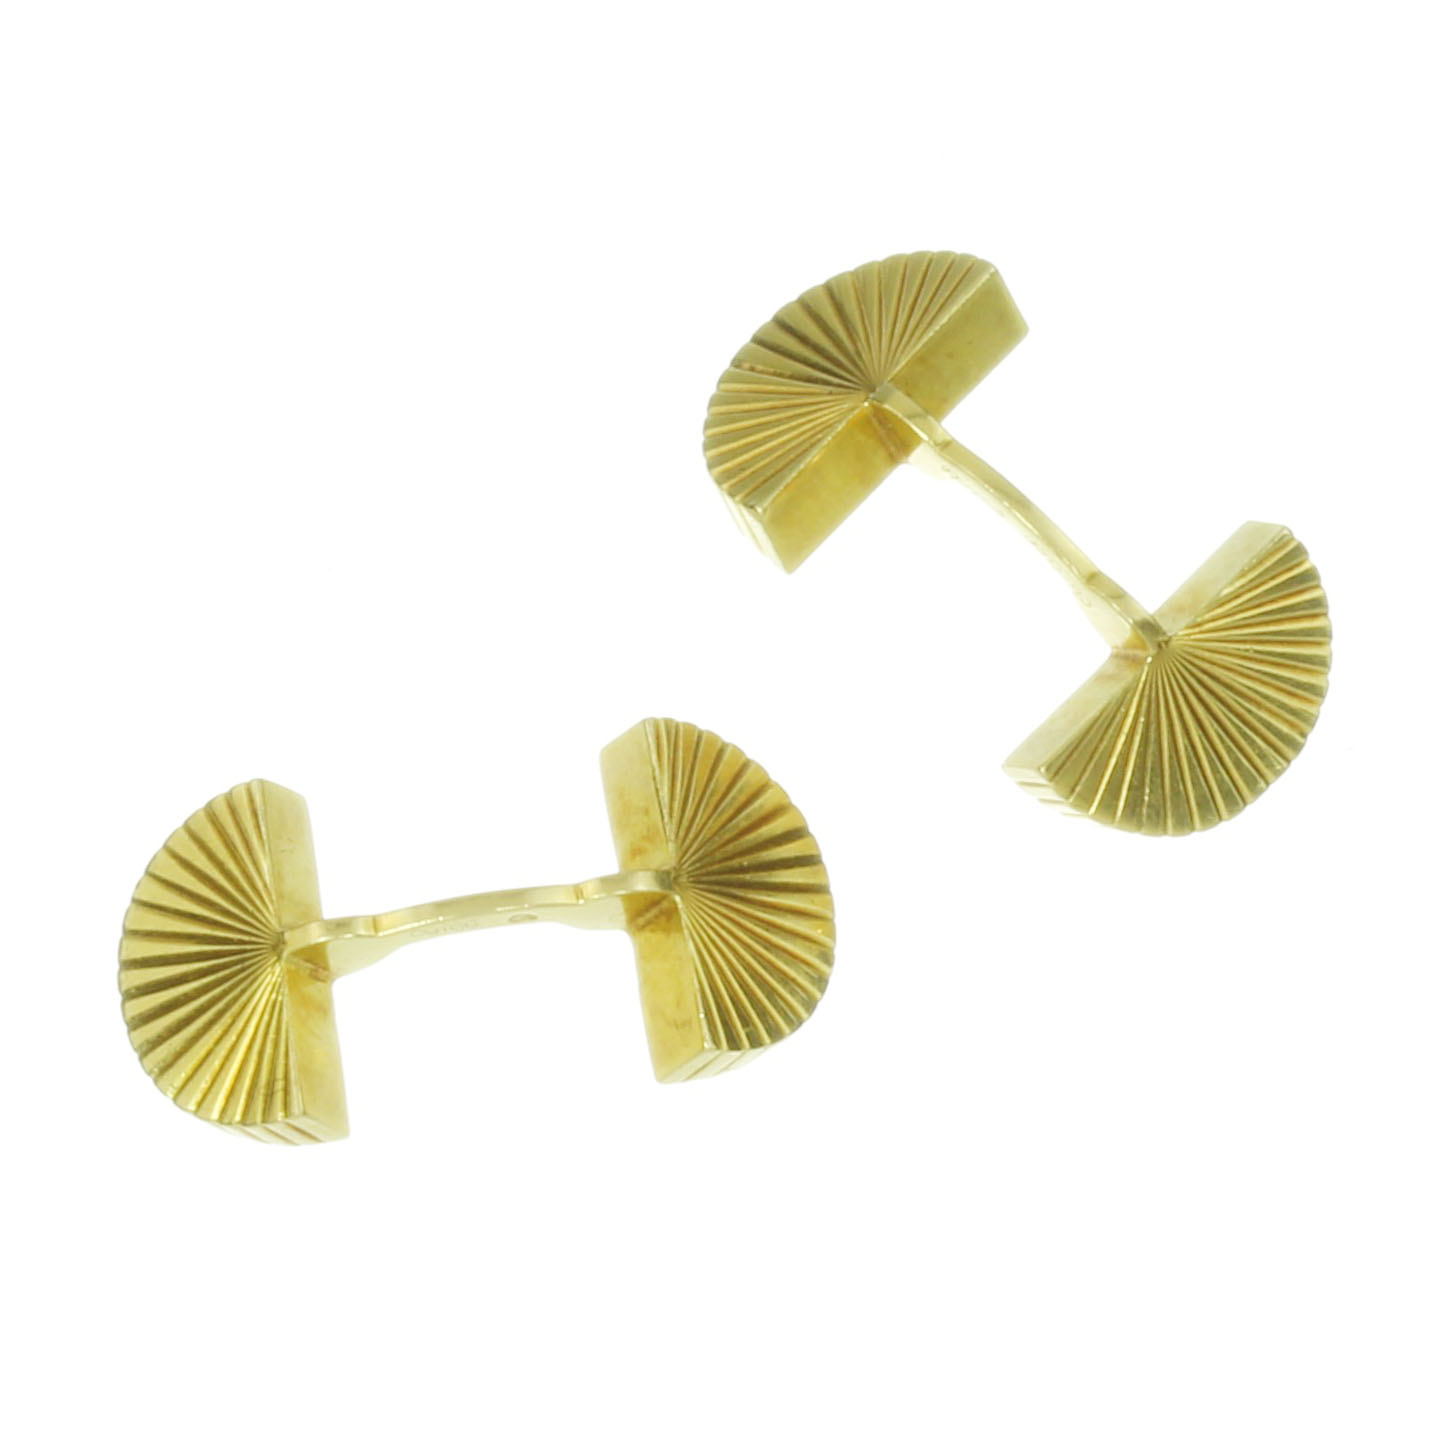 Los 52 - A PAIR OF FAN CUFFLINKS BY CARTIER in 18ct yellow gold each designed as two fan shaped links with